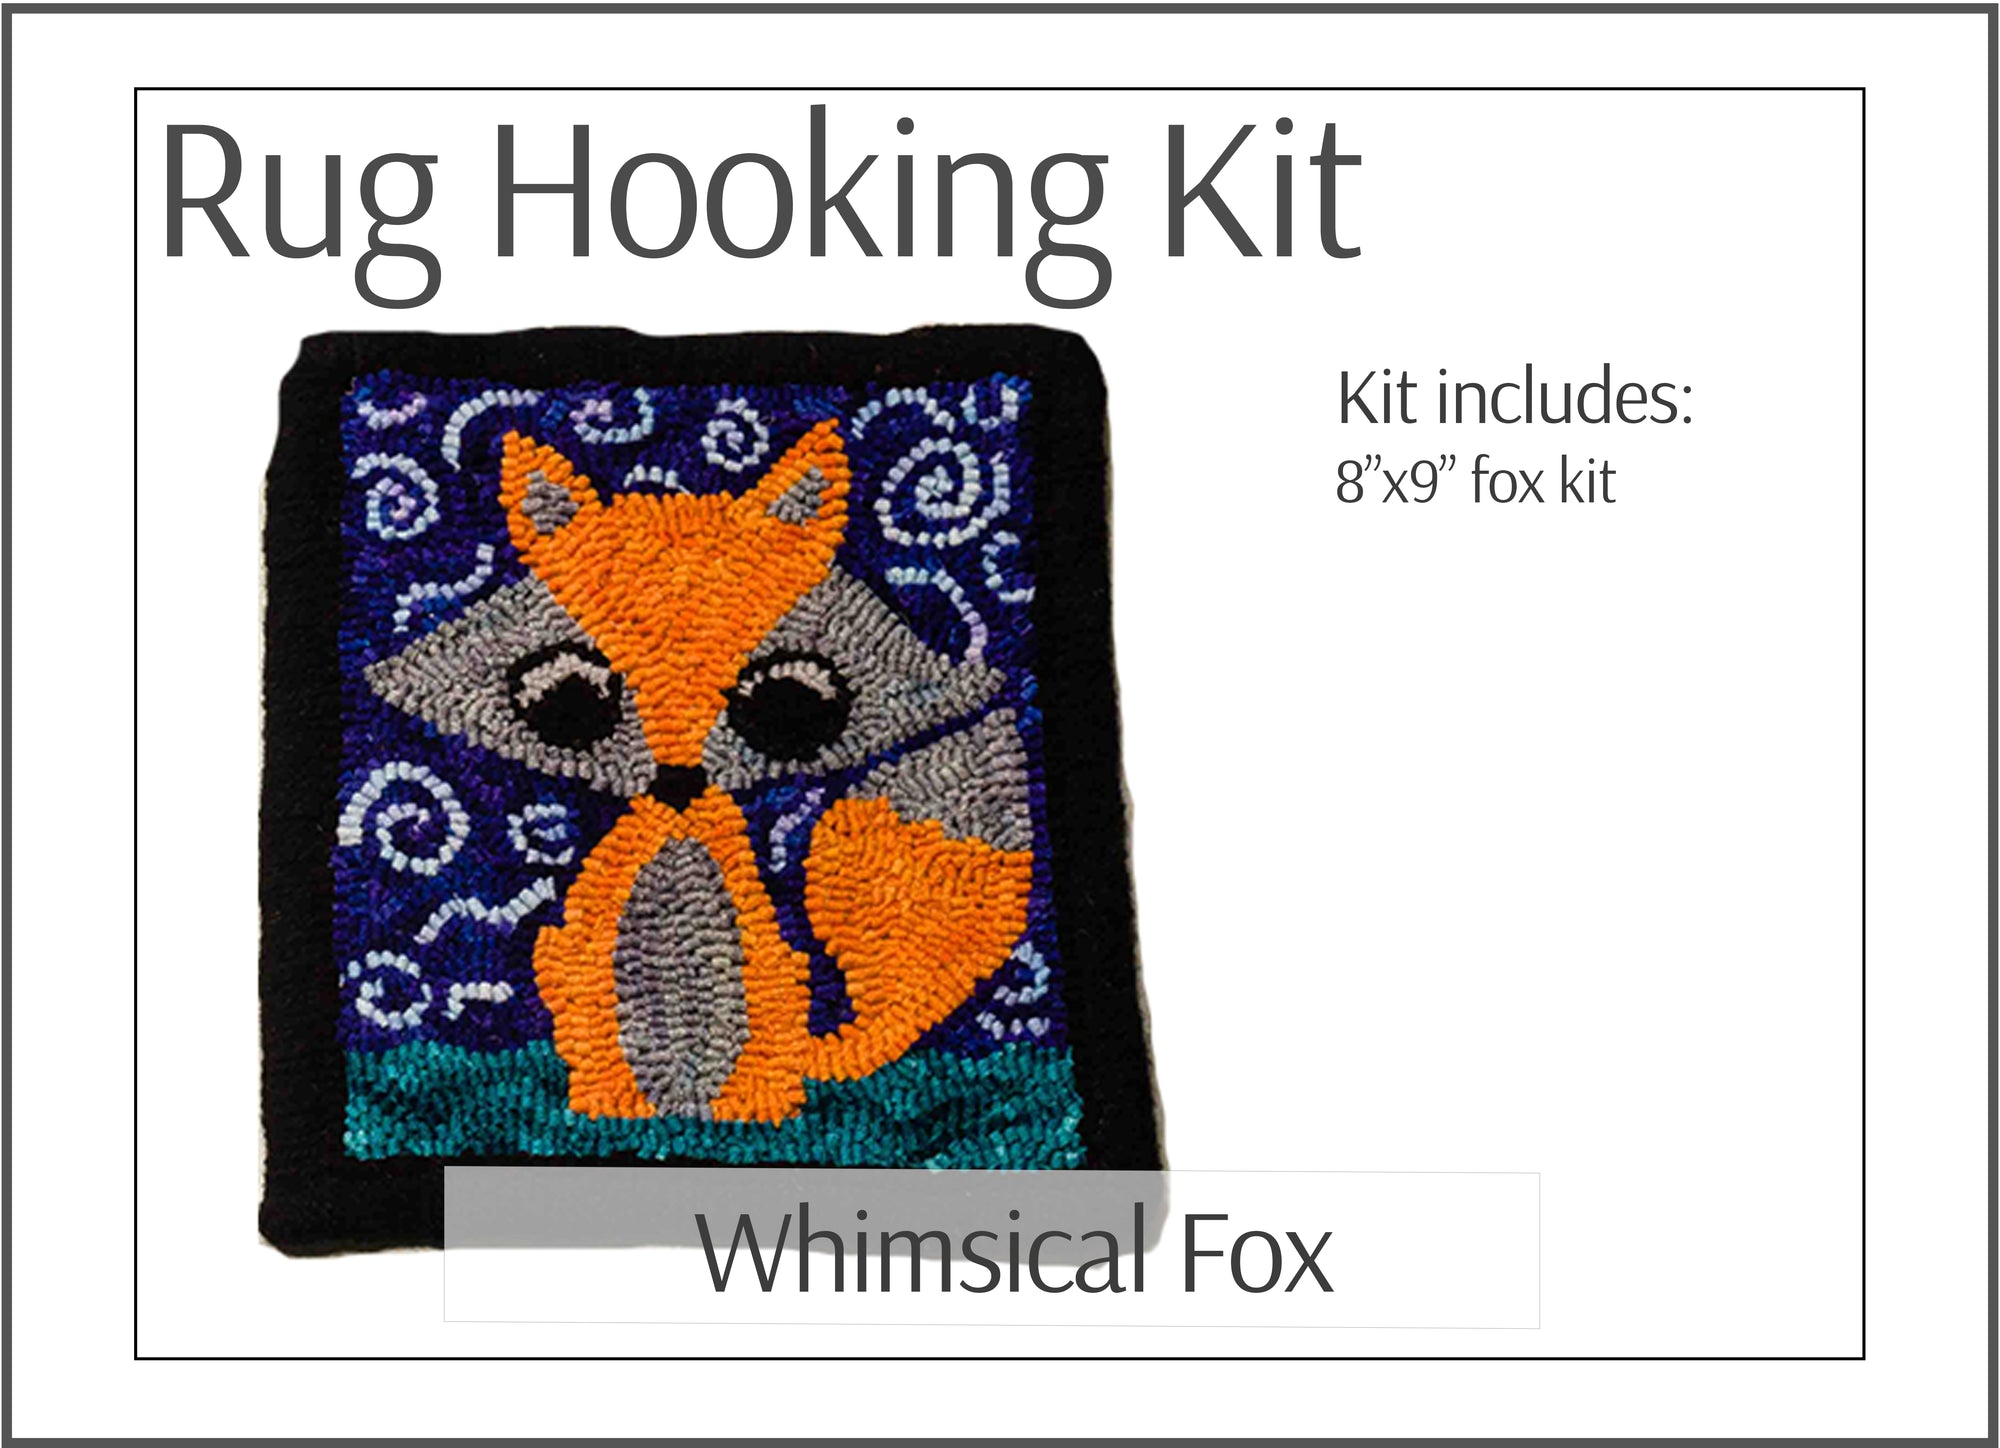 Whimsical Fox Rug Hooking Kit